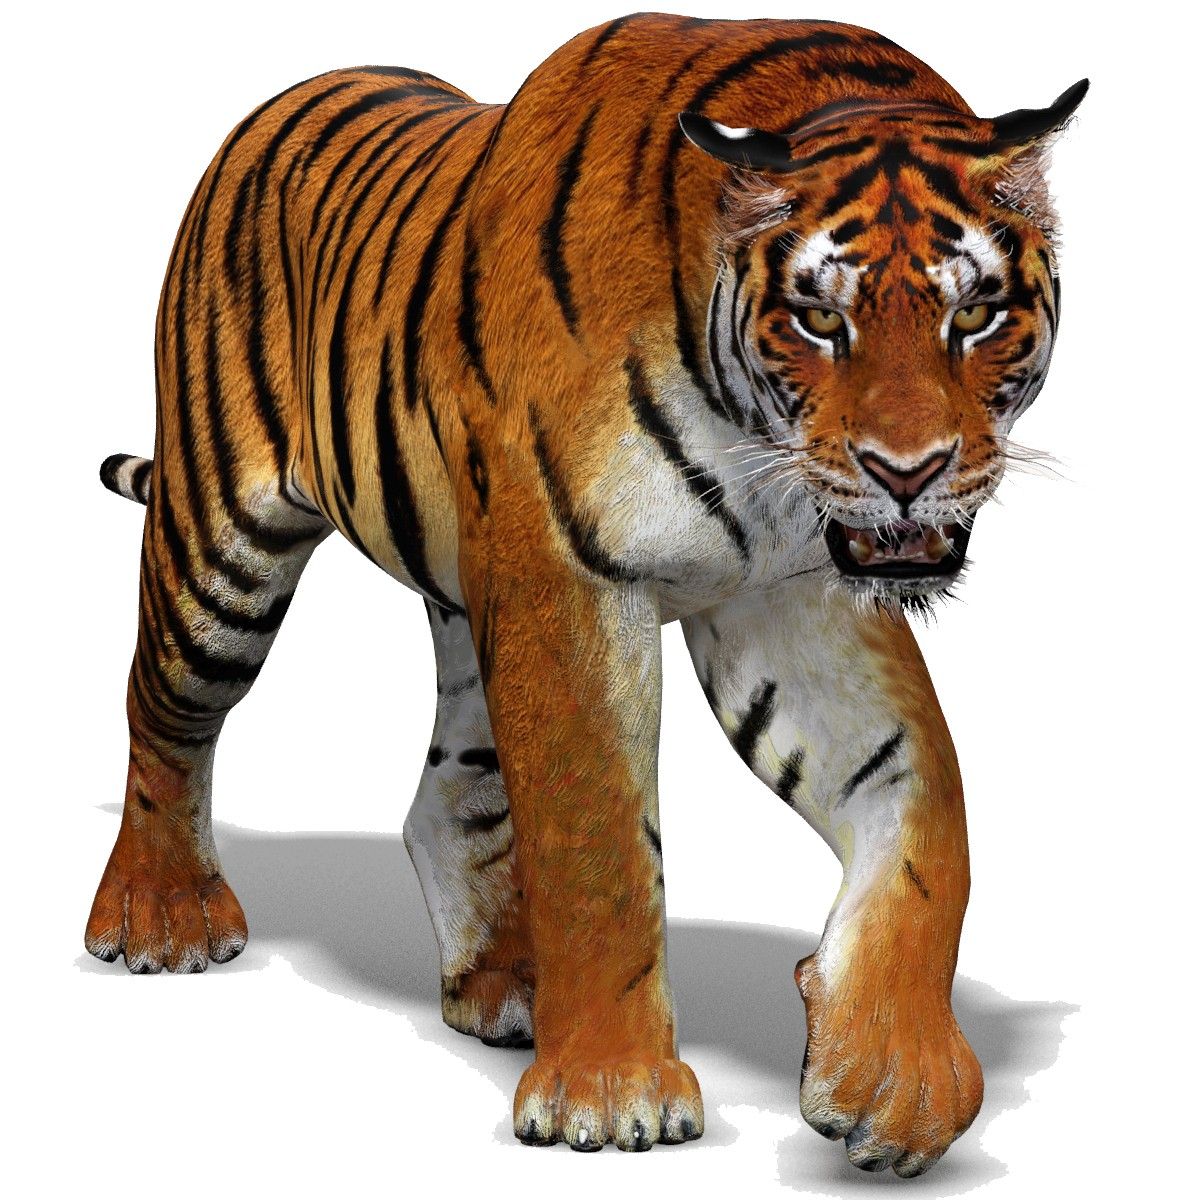 1200x1200 - Animated Tiger 7